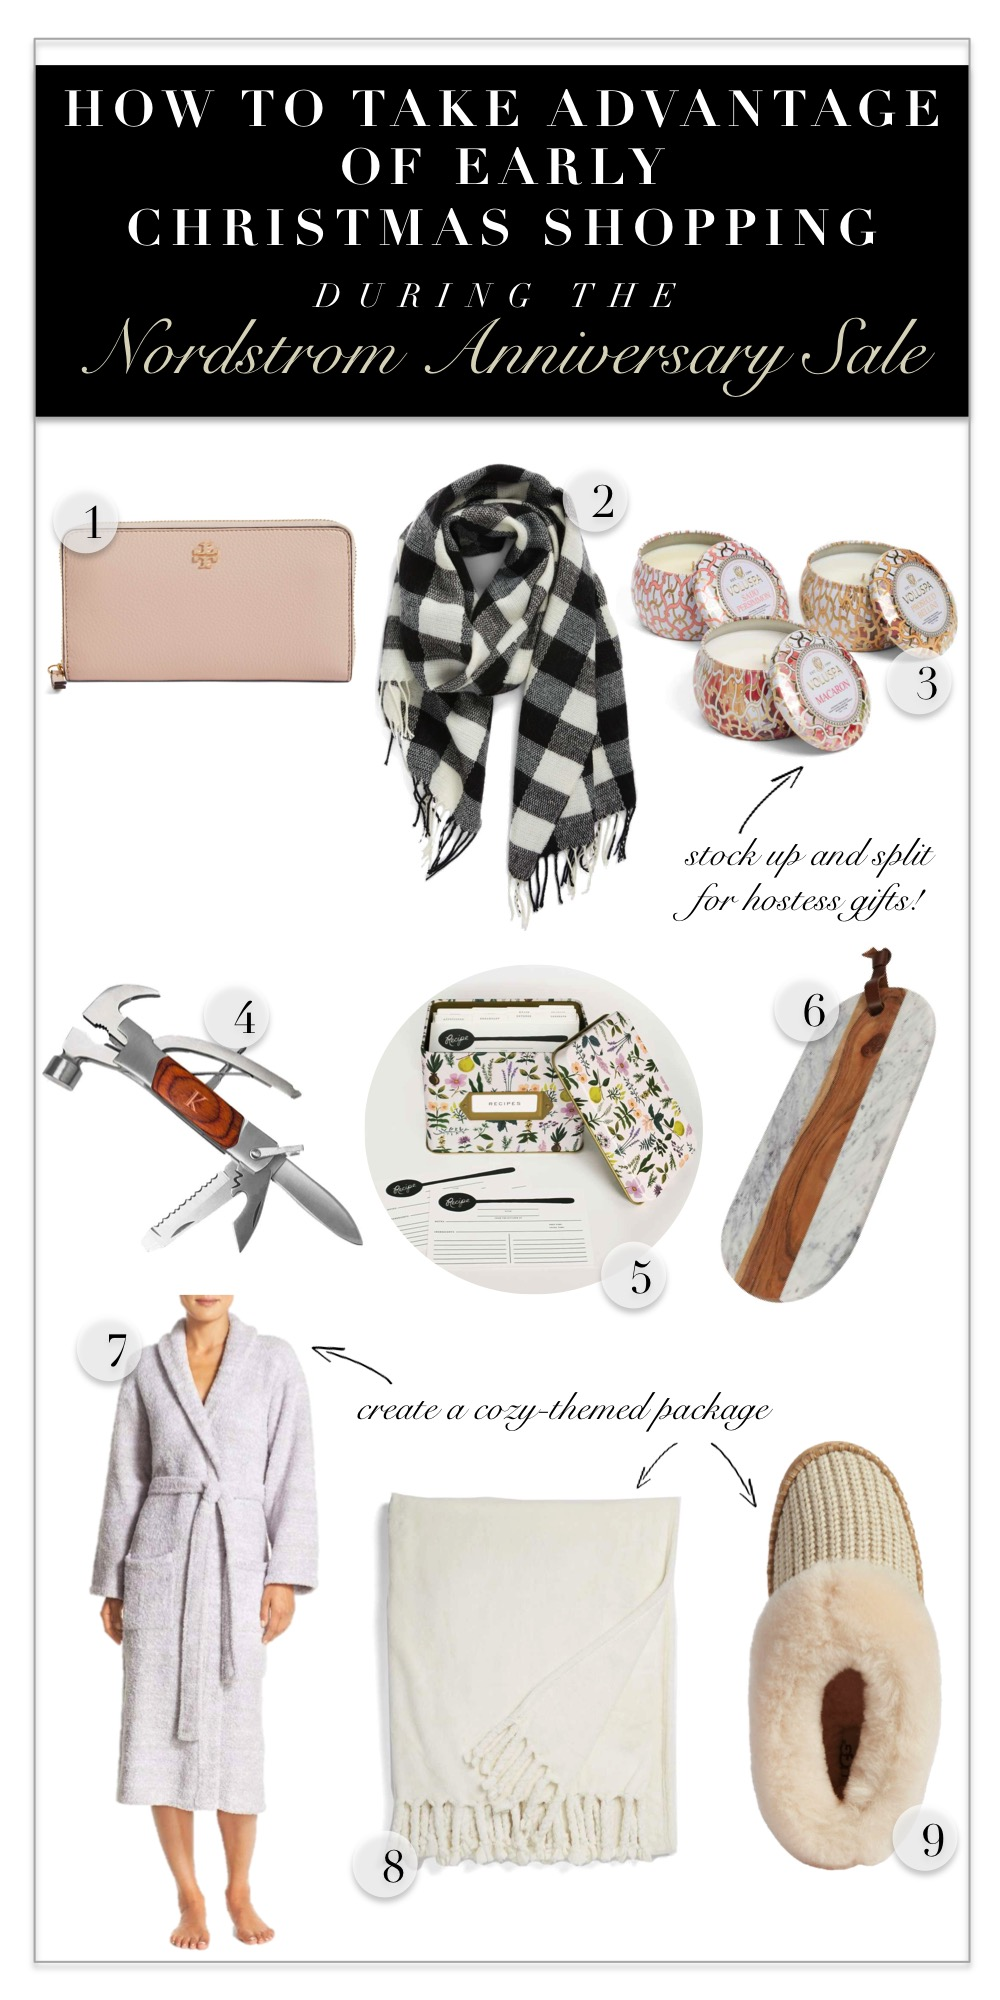 Nordstrom Christmas Gifts - Kelley Nan